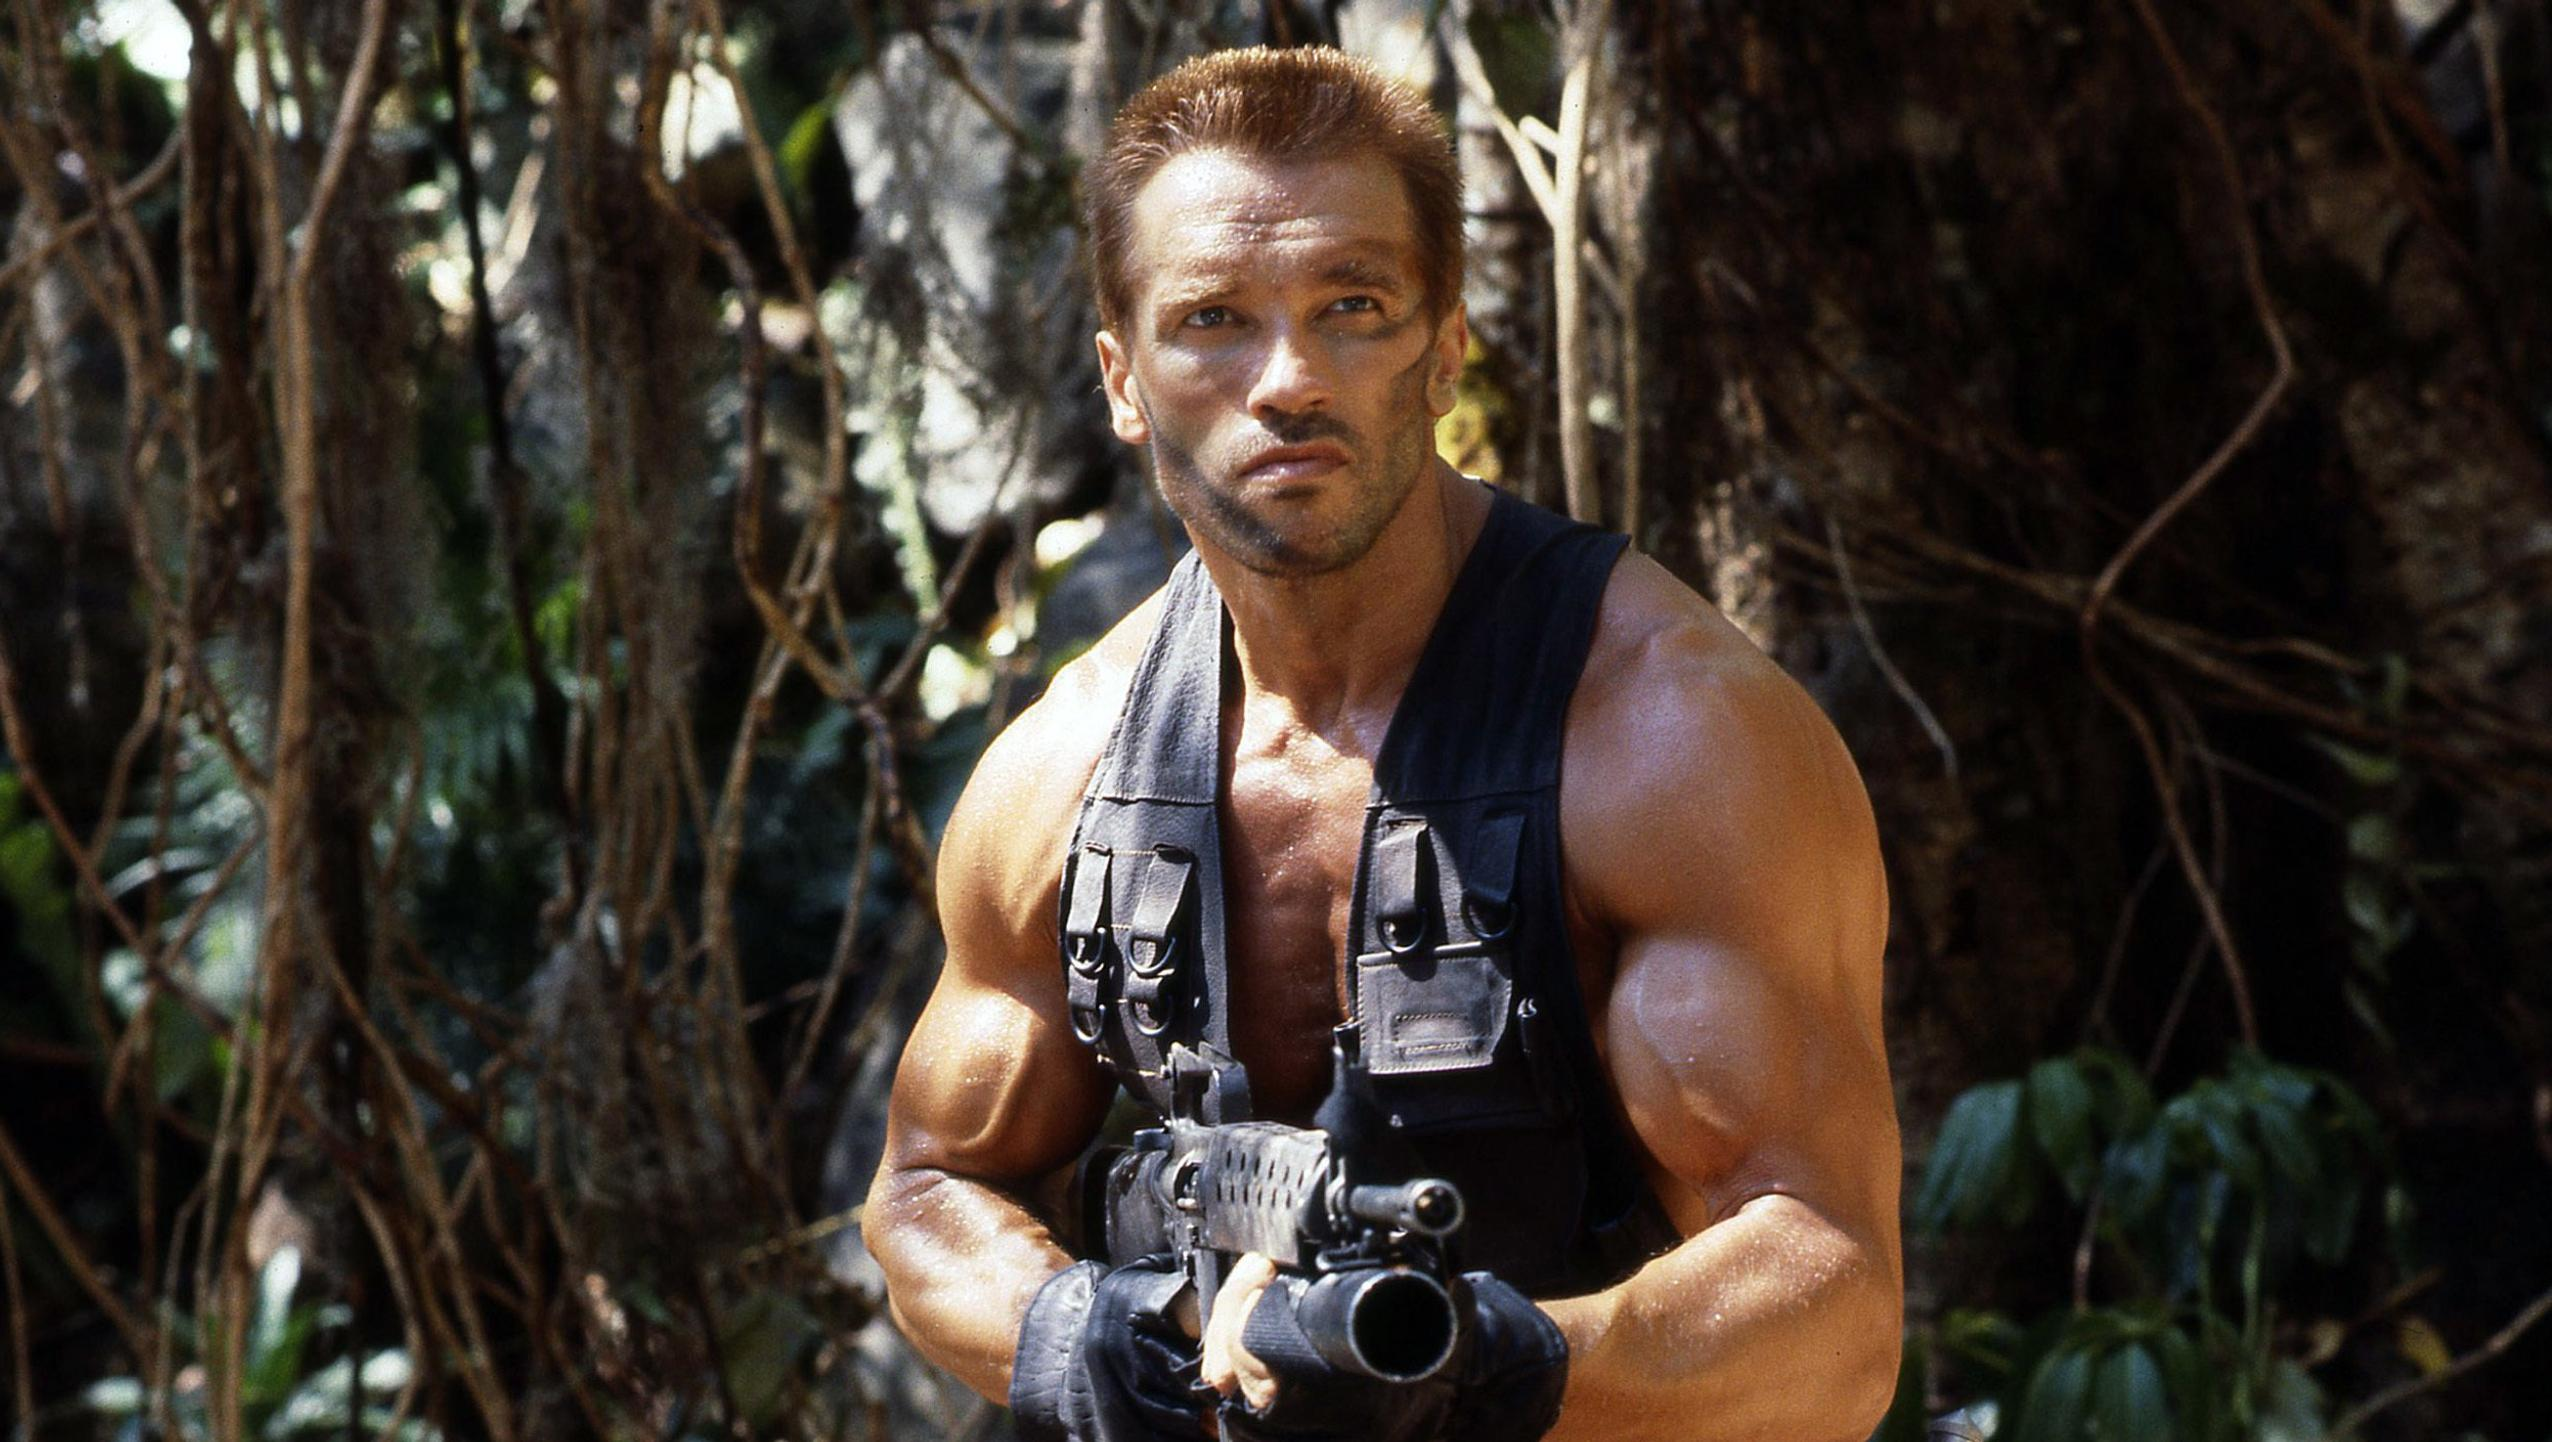 Arnold Schwarzenegger hunted in the jungle in Predator (1987)